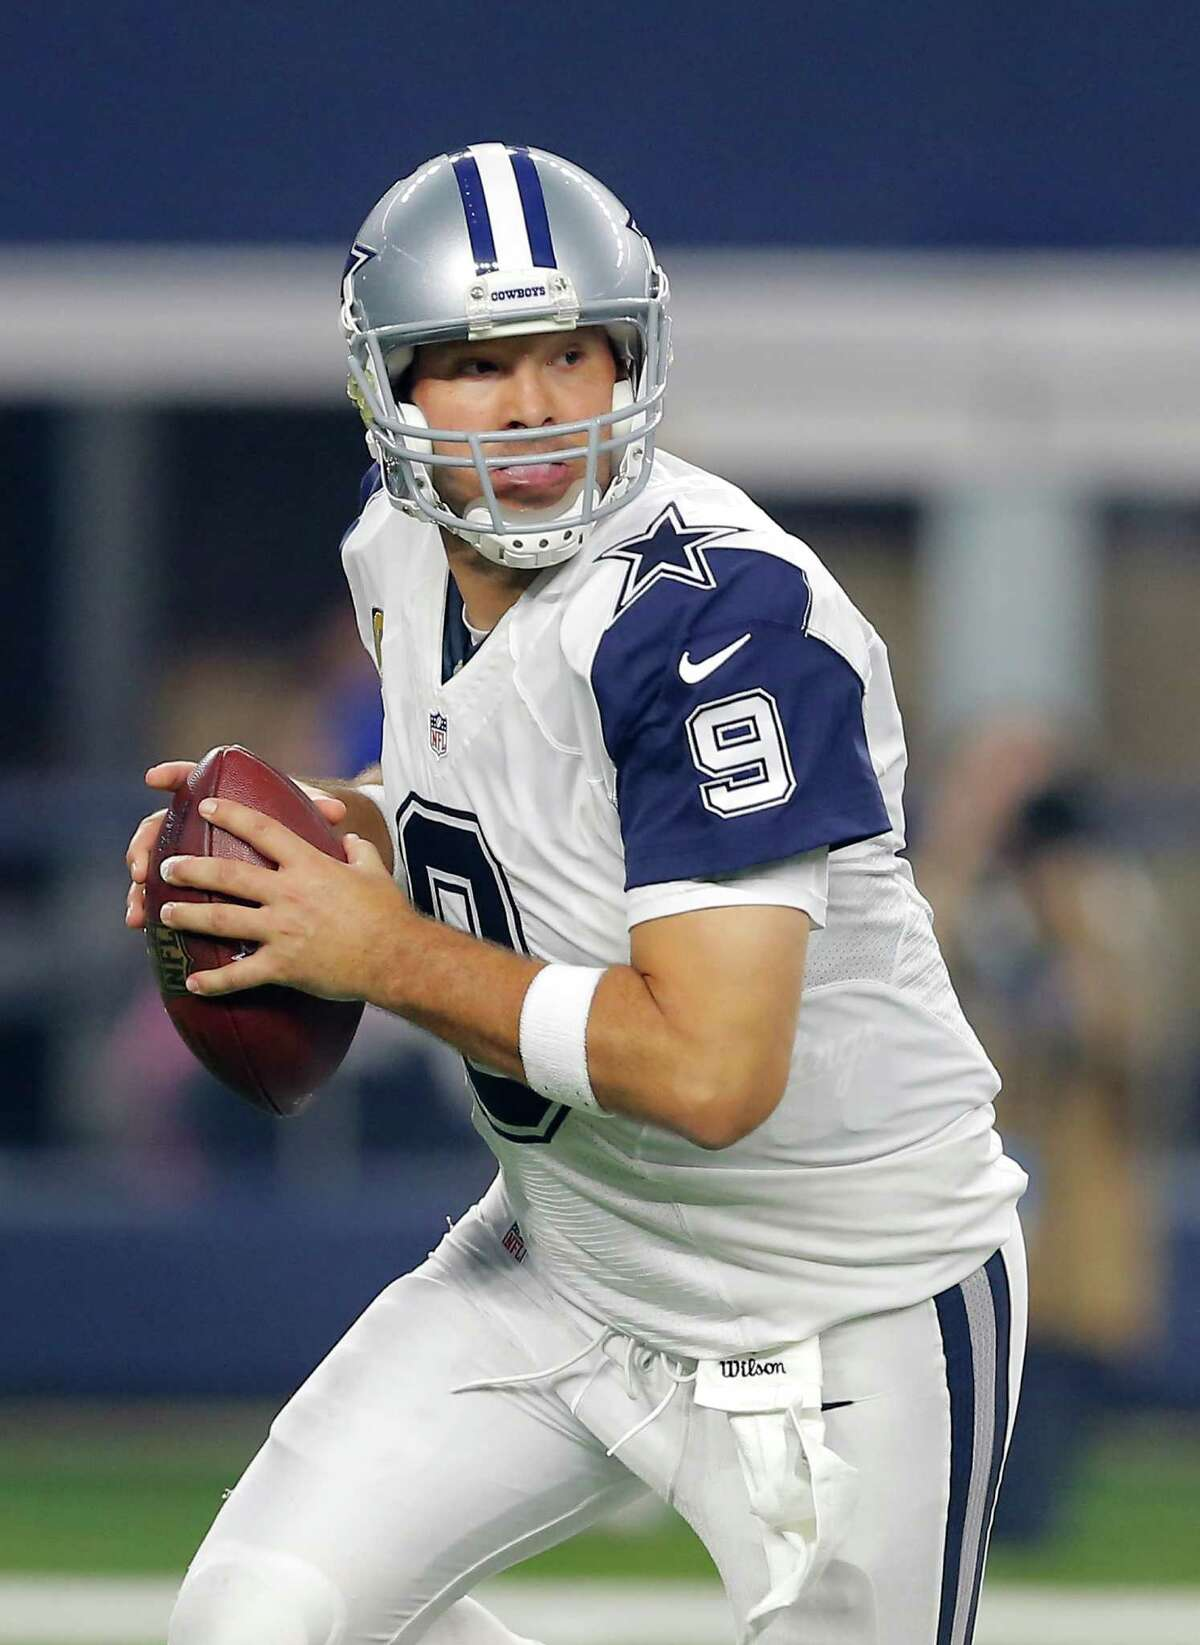 Dallas Cowboys' Tony Romo rolls out of the pocket before passing against the Carolina Panthers on Nov. 26, 2015, in Arlington.